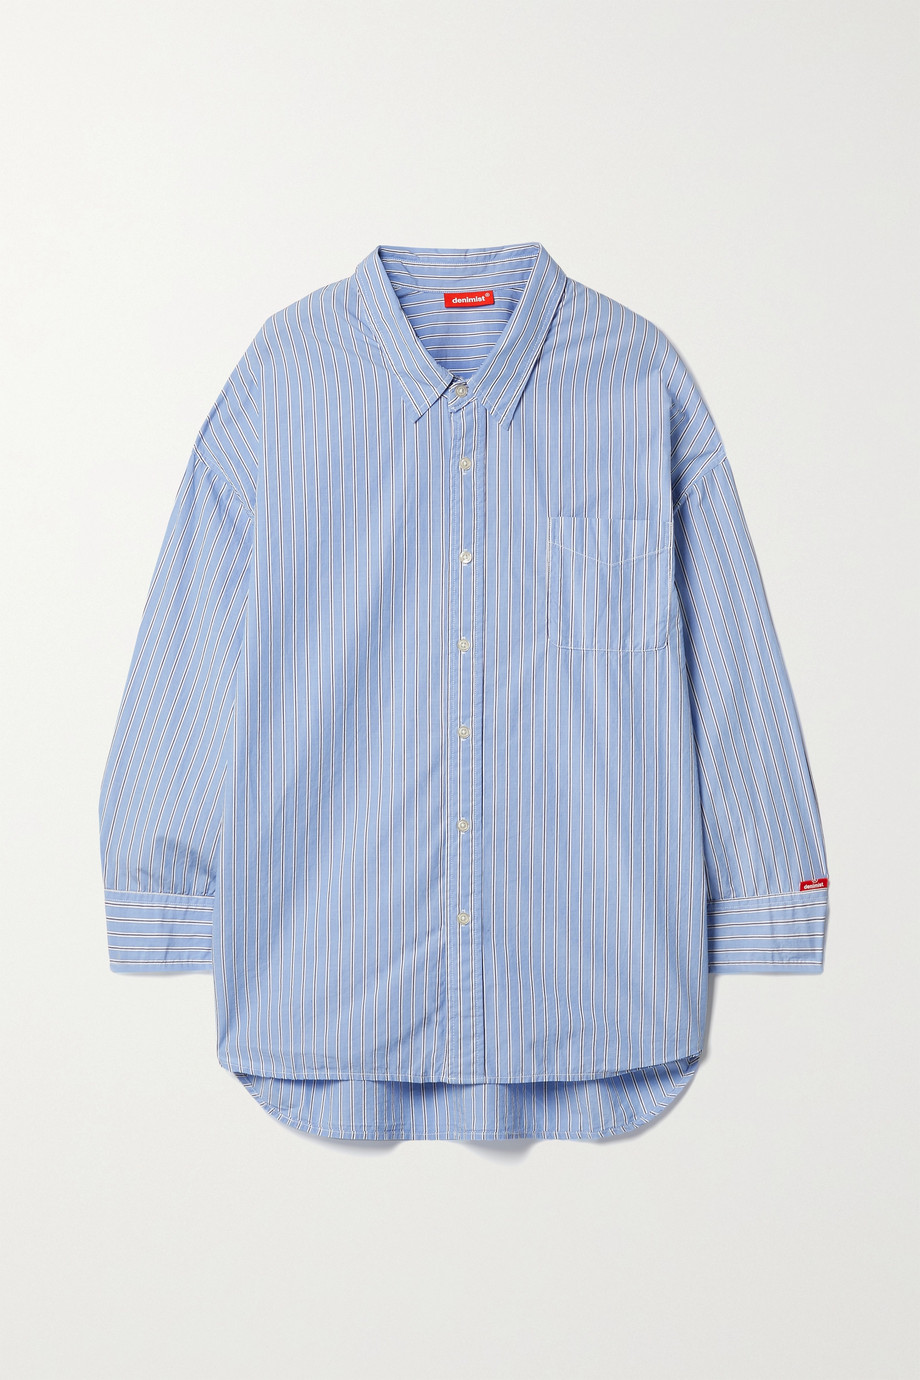 DENIMIST Striped cotton-poplin shirt